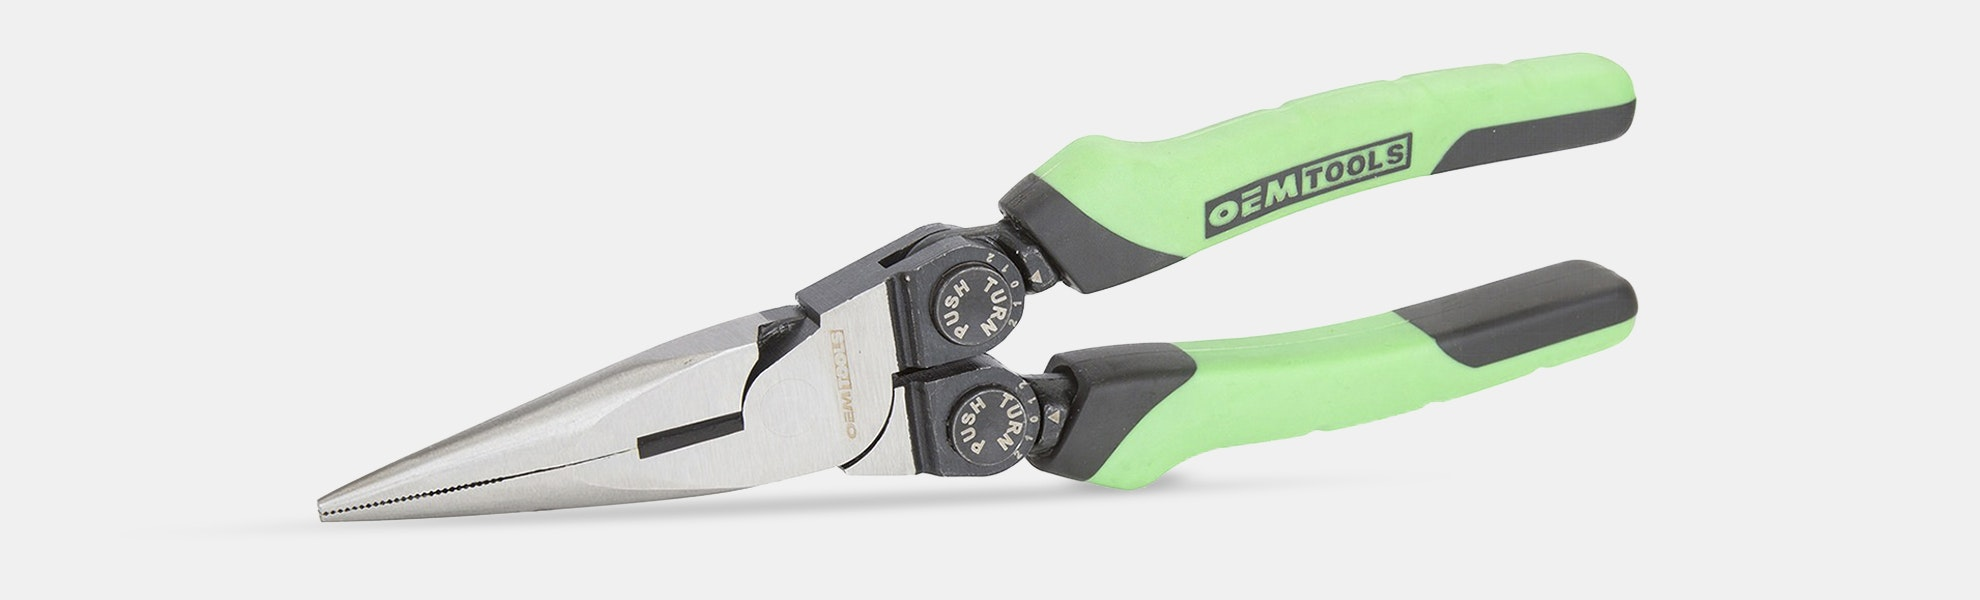 OEM Tools Adjustable-Angle Long Nose Pliers